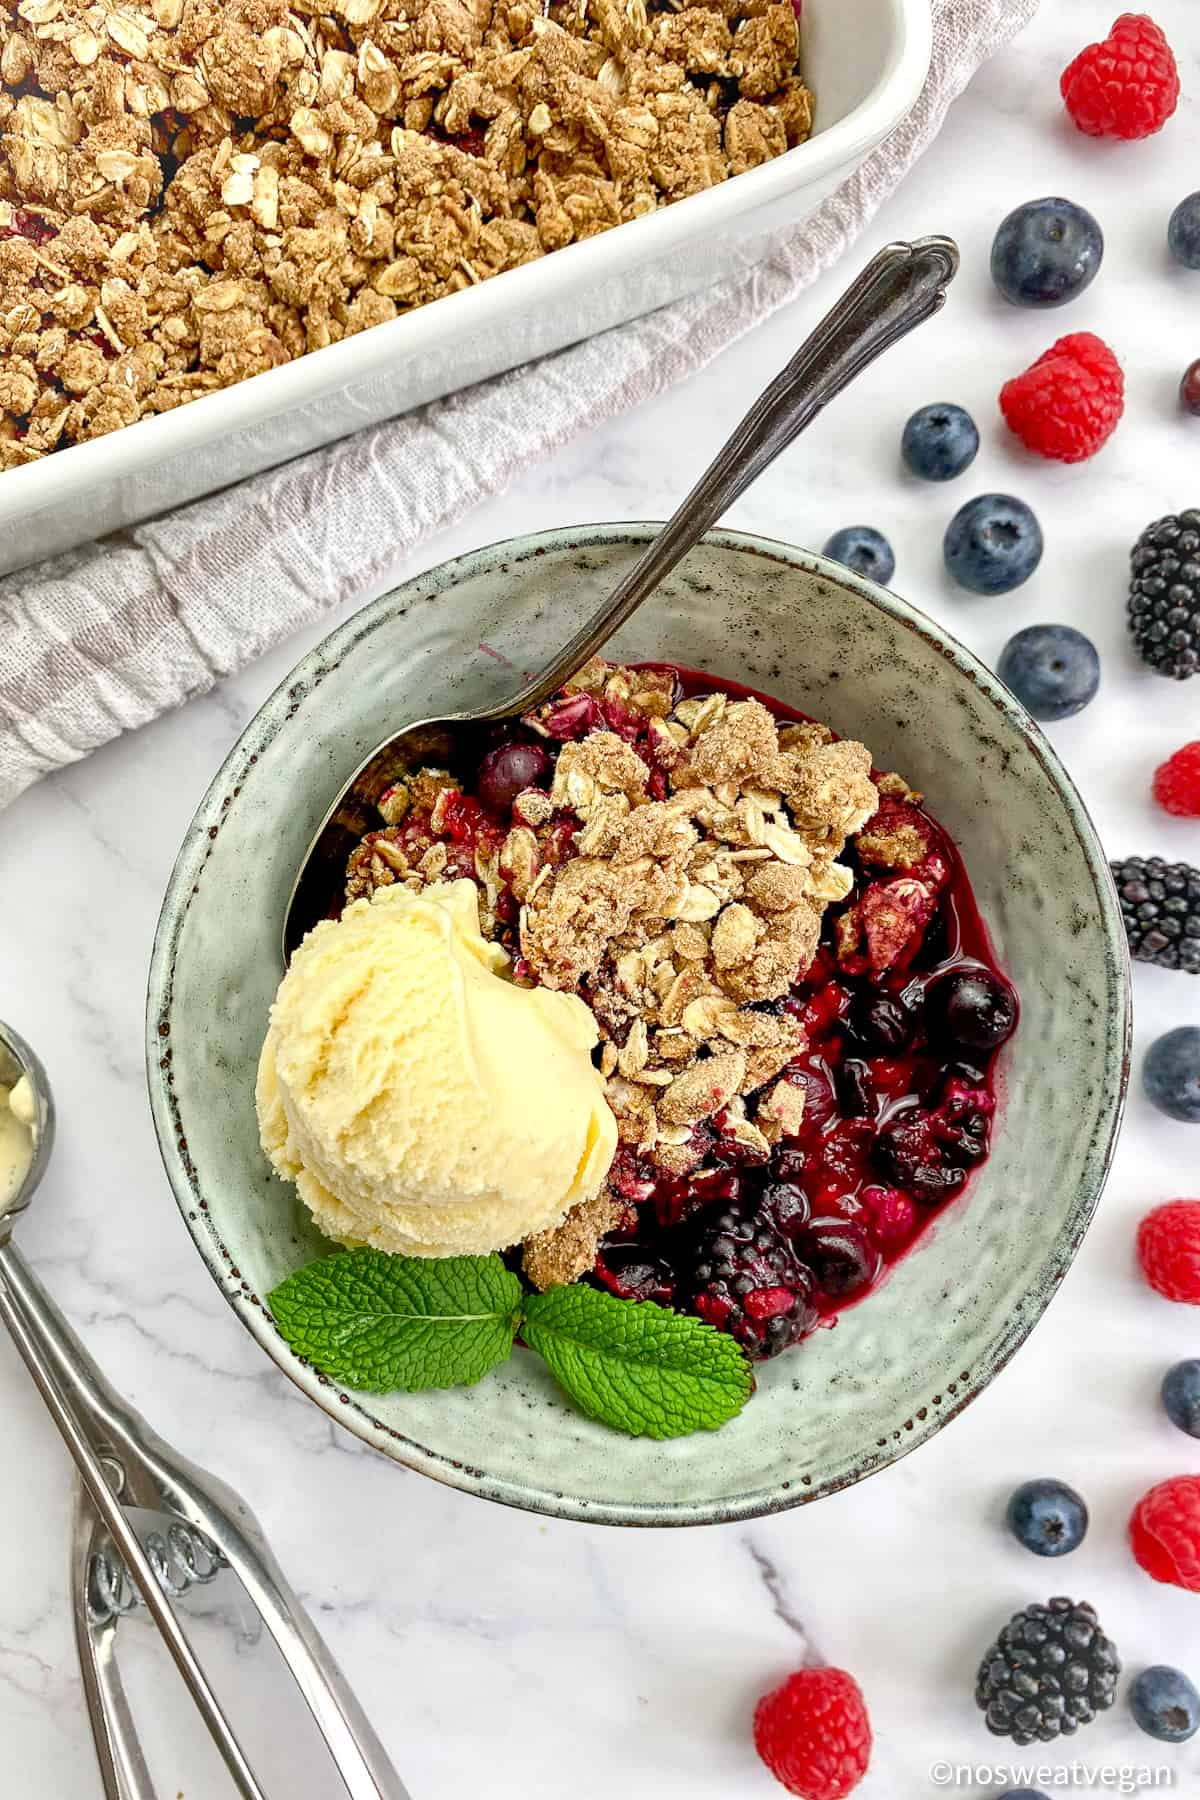 Vegan berry crumble in a bowl with a scoop of ice cream.